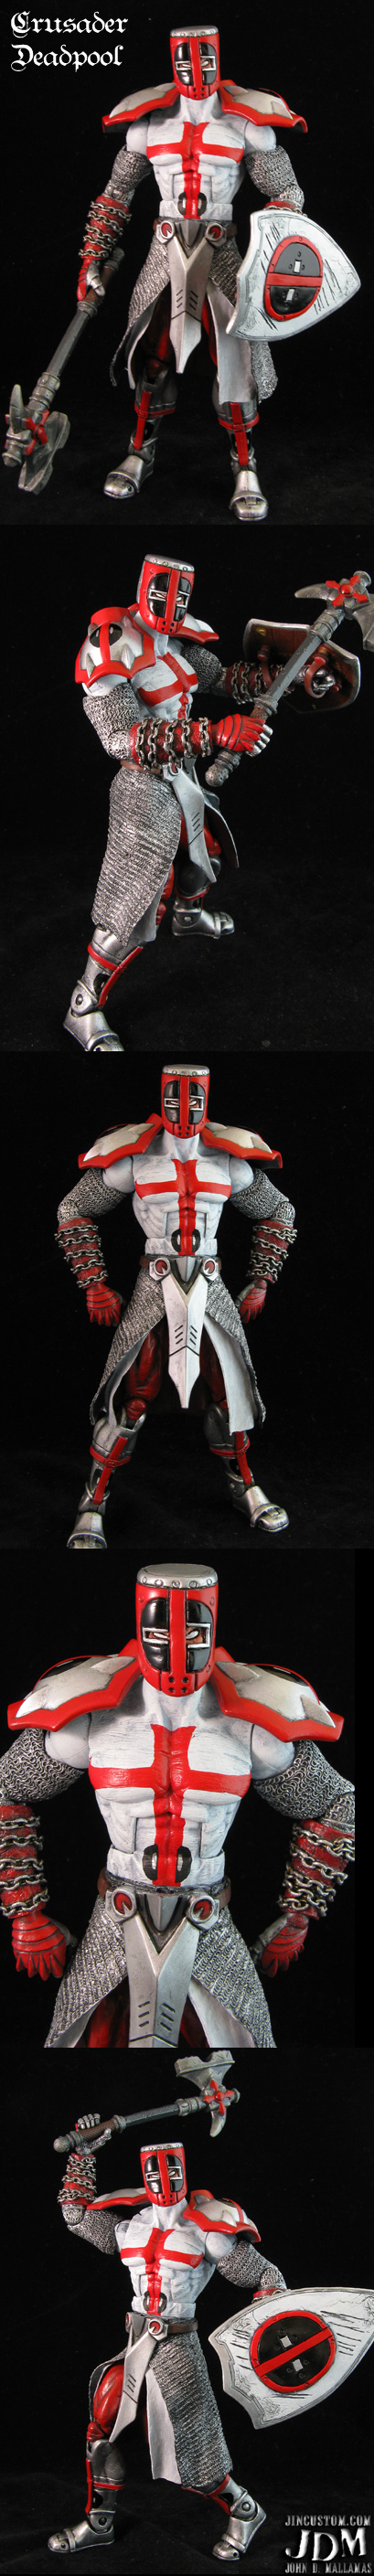 Crusader Deadpool